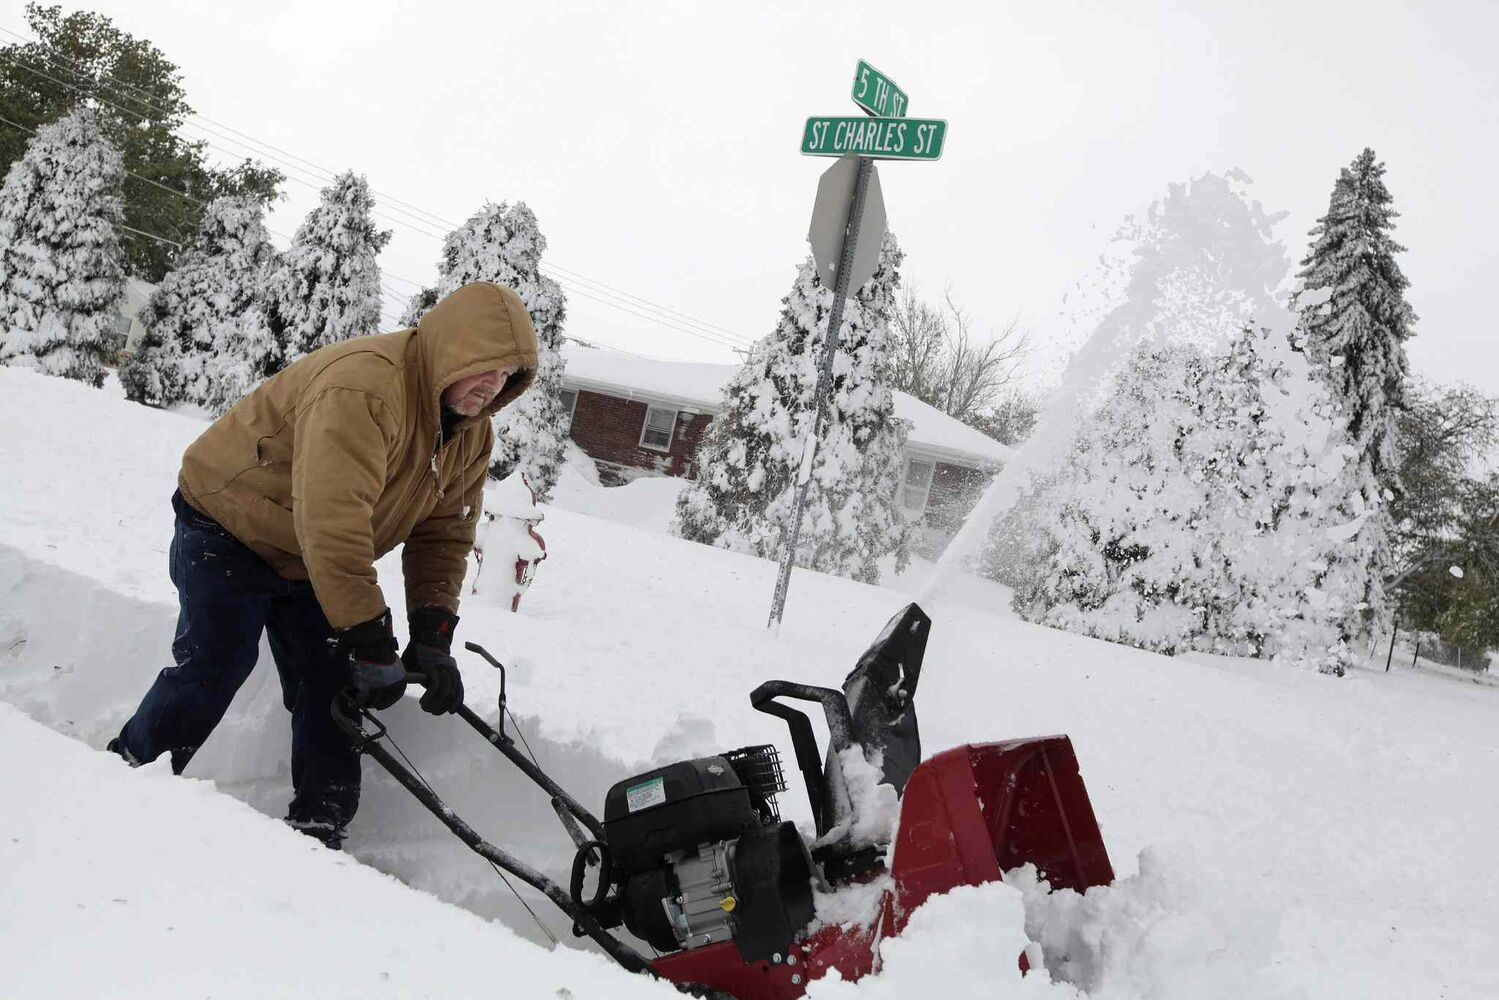 Don Stritecky clears the sidewalk in front of his home with a snow blower in Rapid City, S.D., Saturday, Oct. 5, 2013. South Dakota emergency agencies are asking snowmobile operators in the Rapid City area to help find motorists stranded by an autumn storm.  (Benjamin Brayfield / The ASsociated Press)